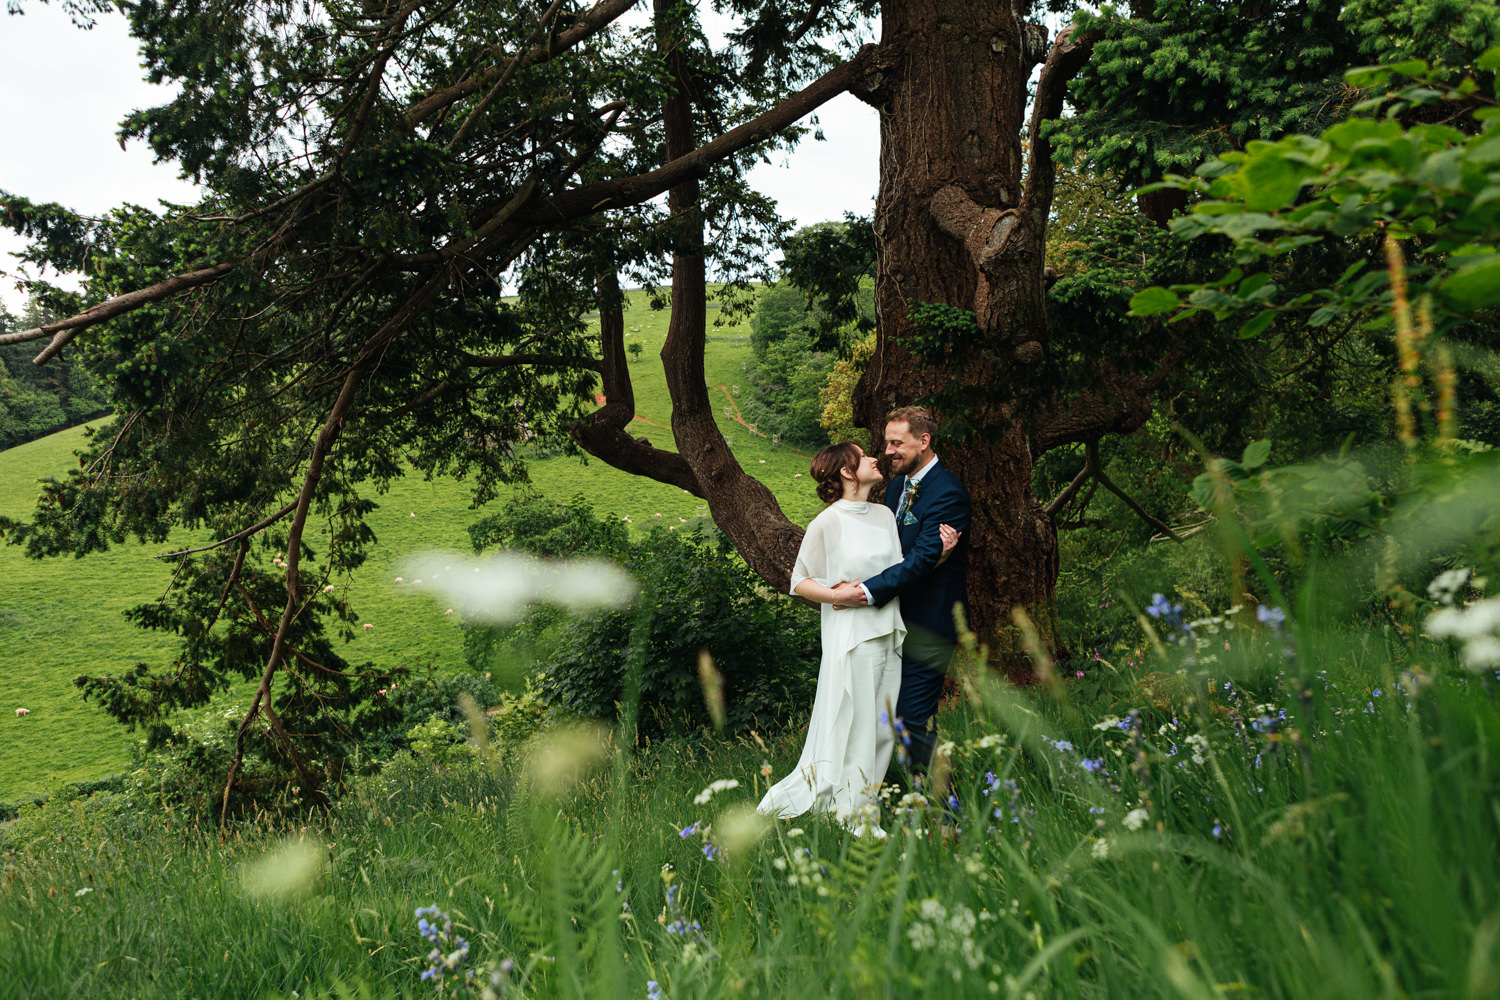 couple portrait, newlyweds, oak tree, sharpham gardens, sharpham gardens wedding photography, garden wedding, bride and groom, flowers, spring wedding, sharpham, devon wedding, outdoors